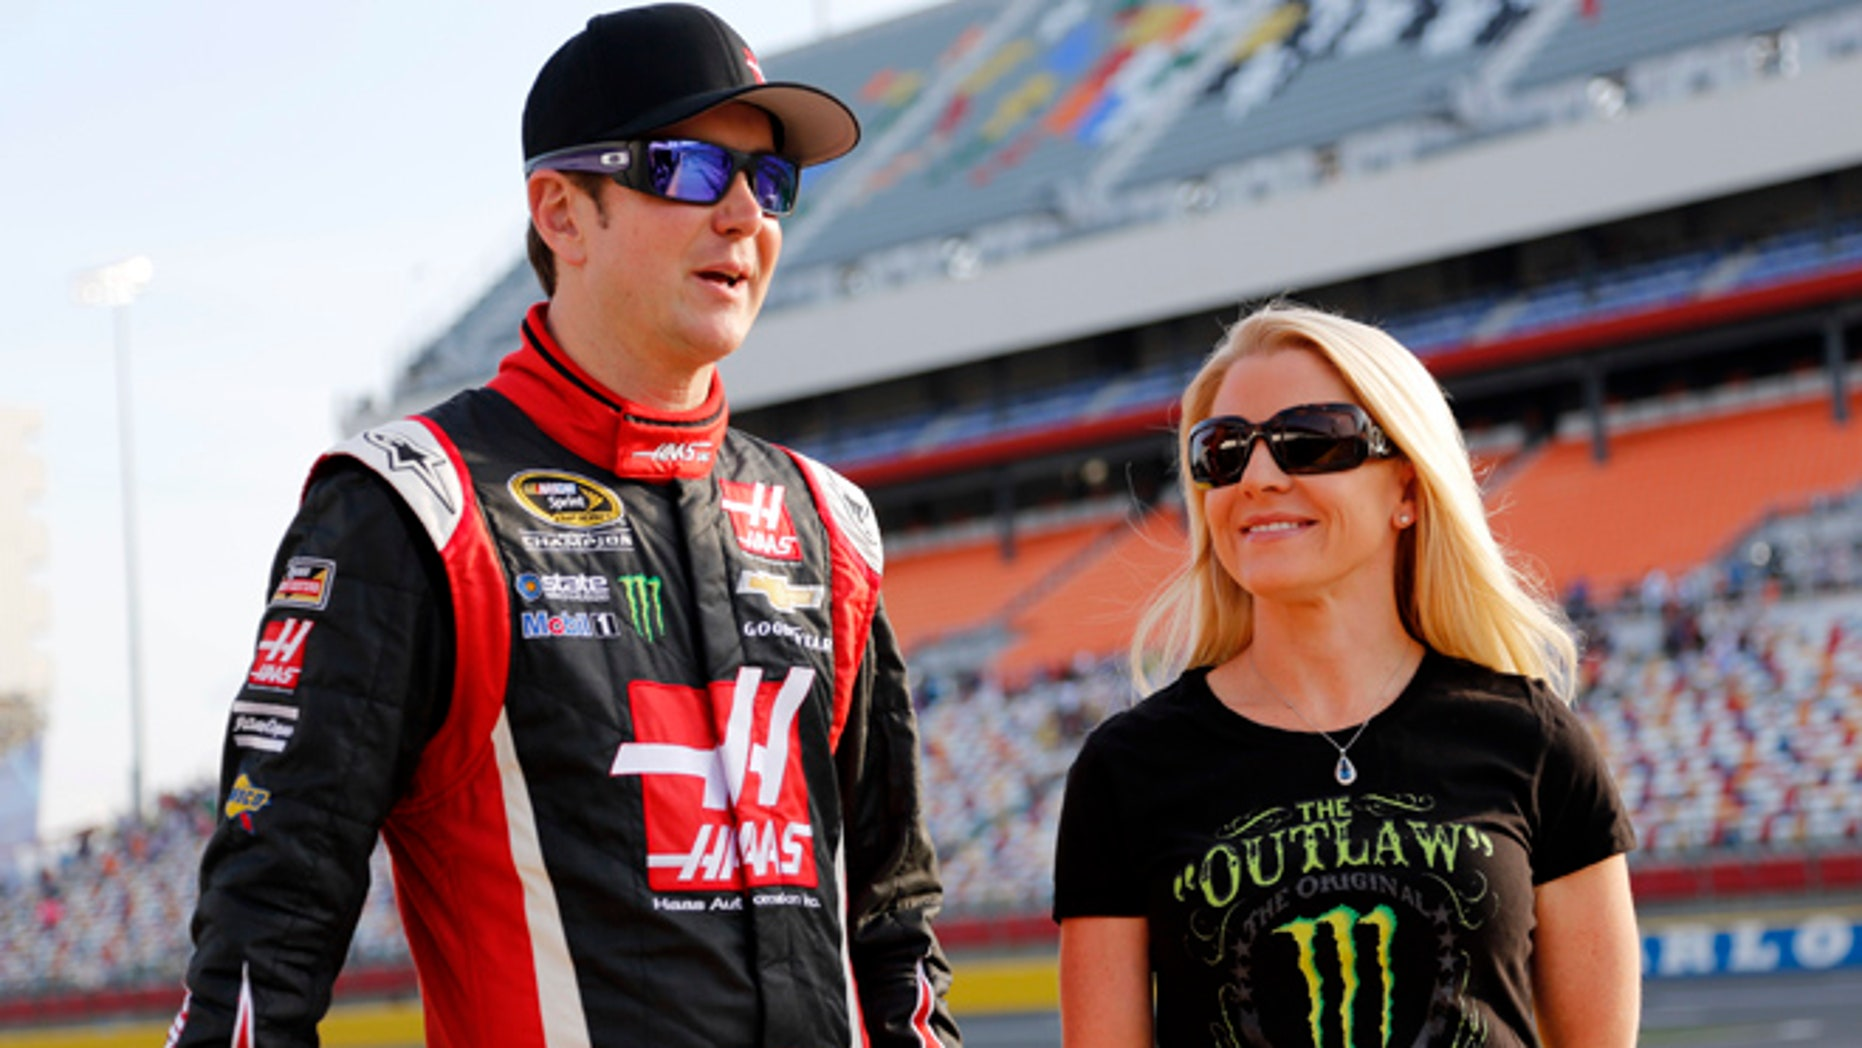 In this May 22, 2014, file photo, Kurt Busch, left, stands with Patricia Driscoll before qualifying for a NASCAR Sprint Cup series auto race at Charlotte Motor Speedway in Concord, N.C.